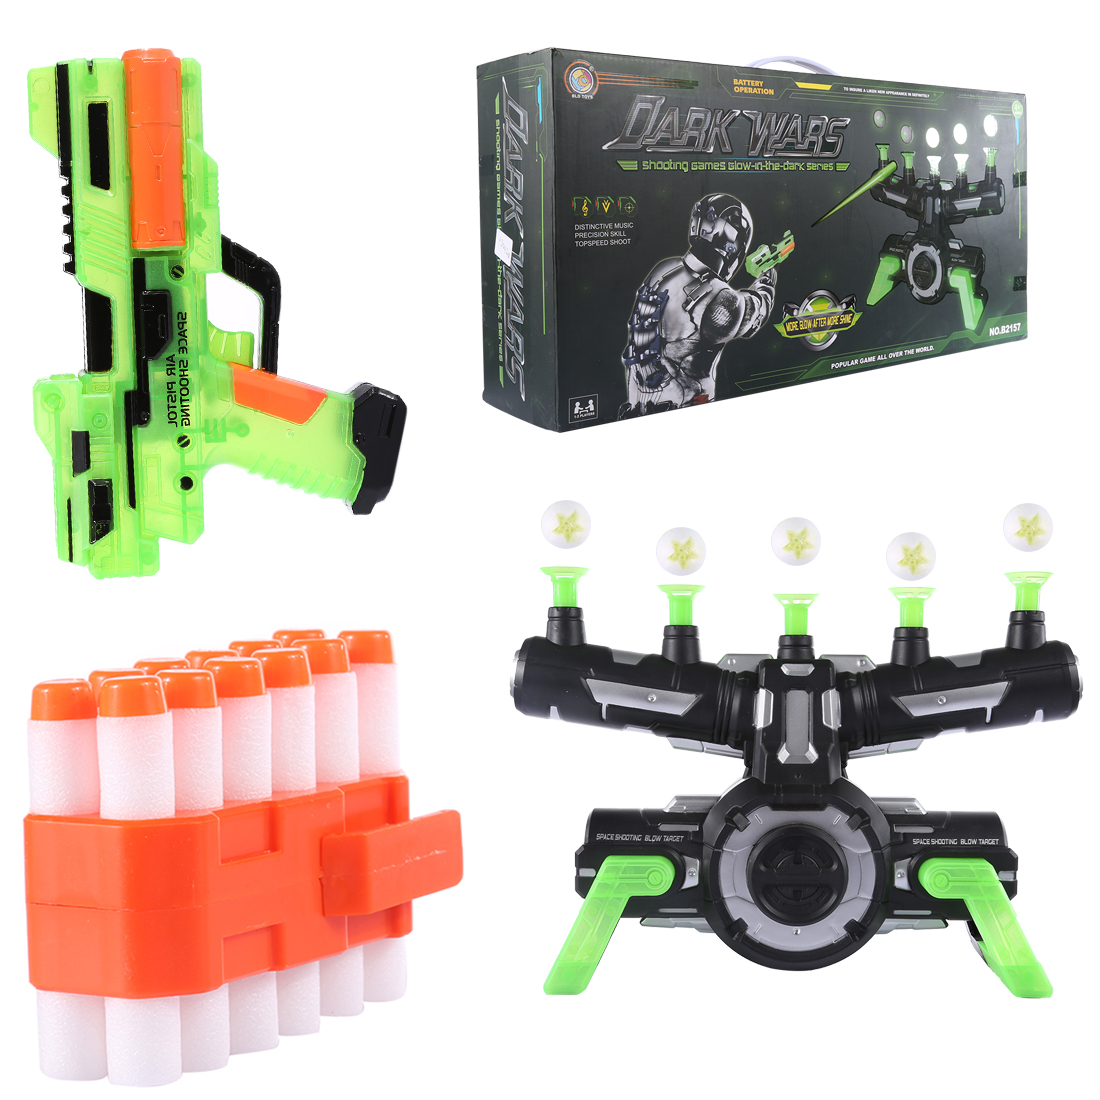 Electrodynamics Suspension Soft Bullet Shooting Toy and Suspension Dart Board Set(Luminous Version) - Black-green